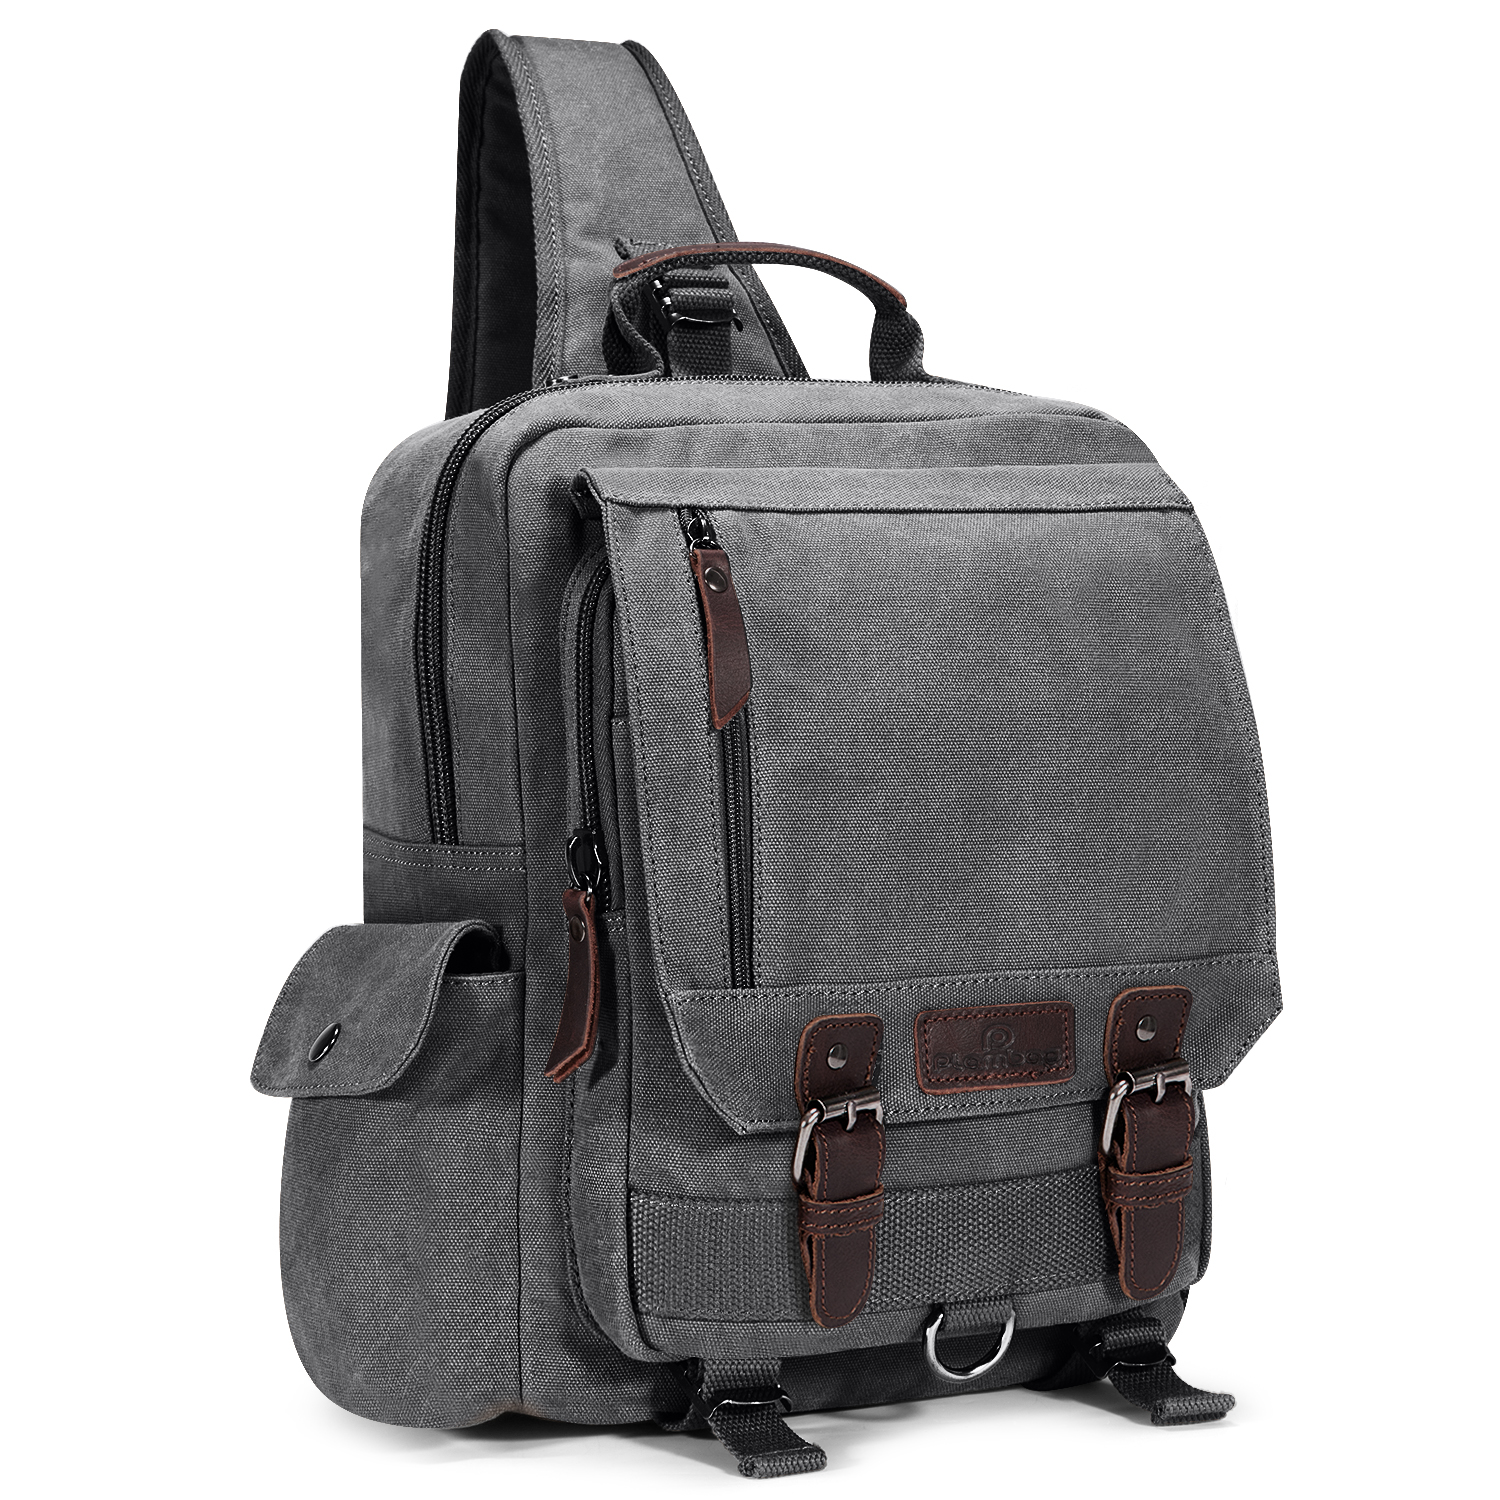 Men Canvas Sling Chest Bag Travel Hiking Cross Body Messenger ...